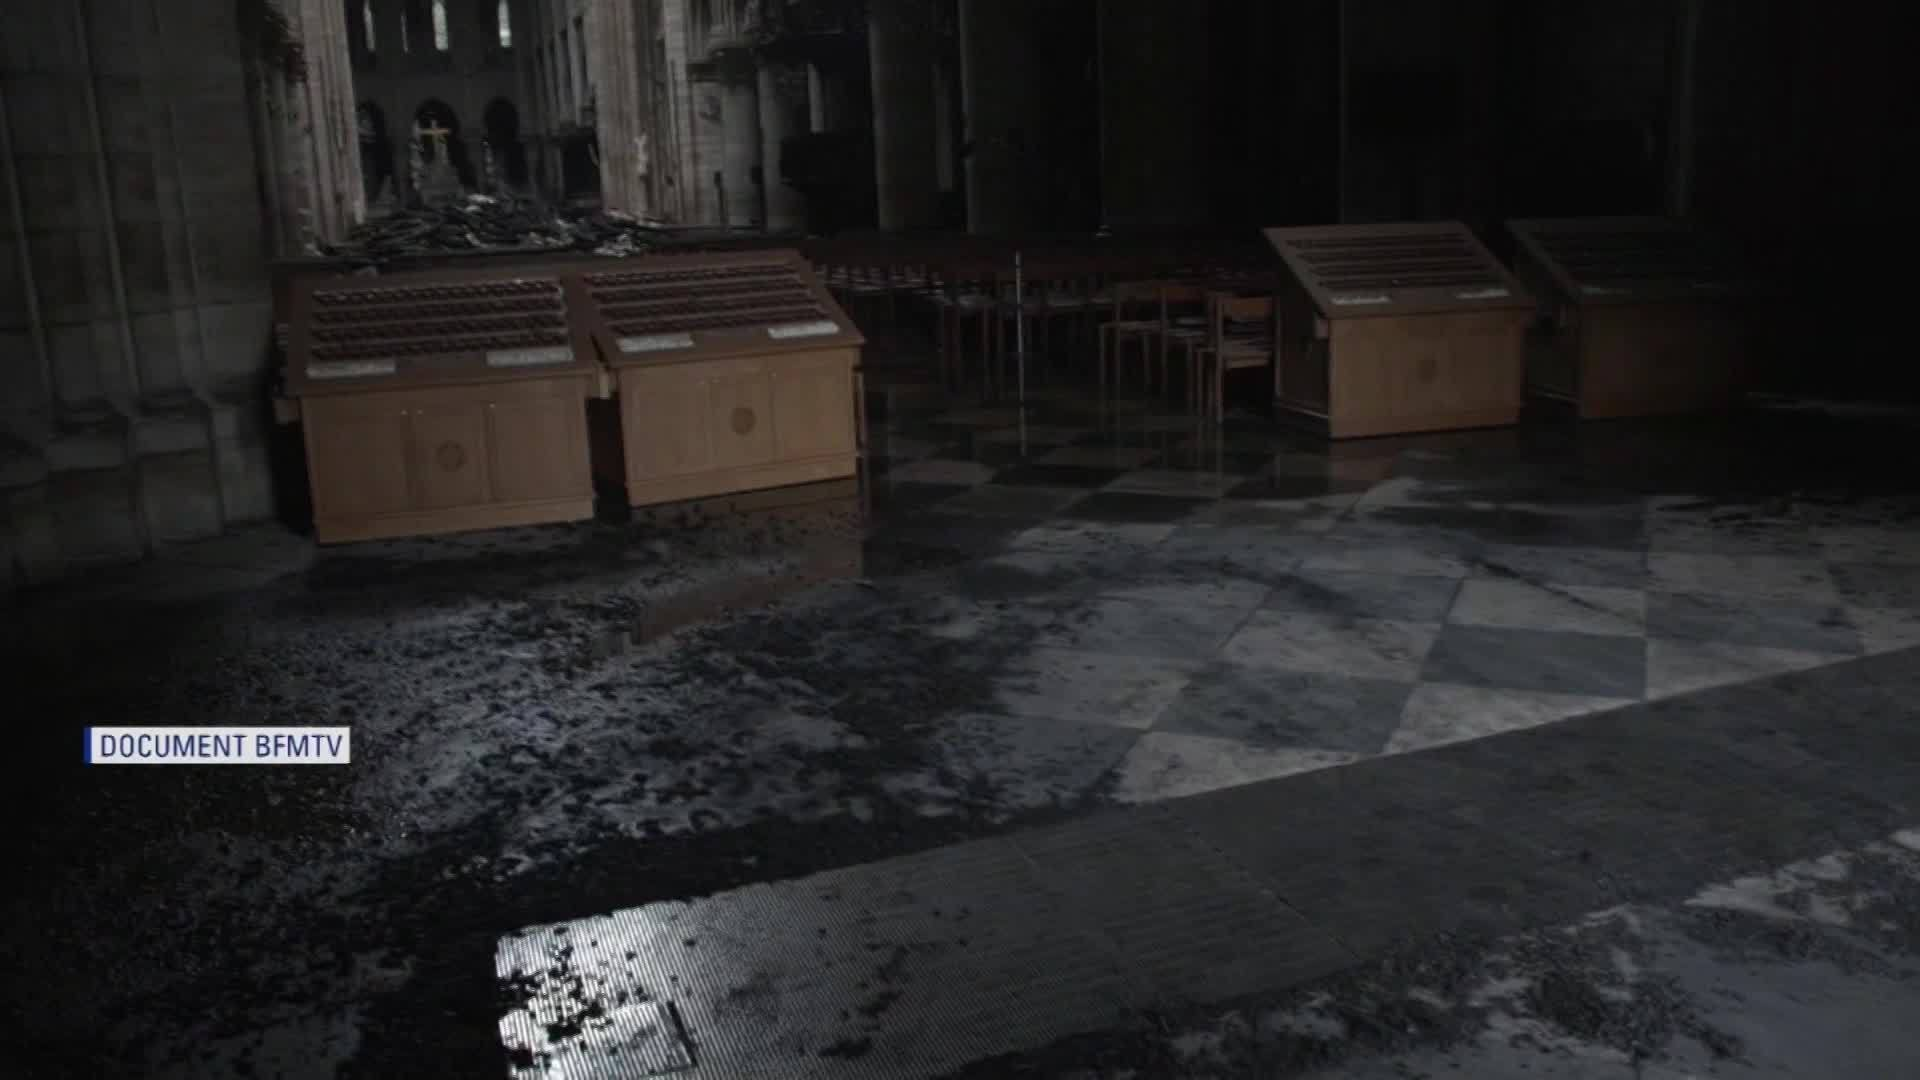 Notre_Dame_Fire__Images_from_inside_chur_6_20190416164718-846653543